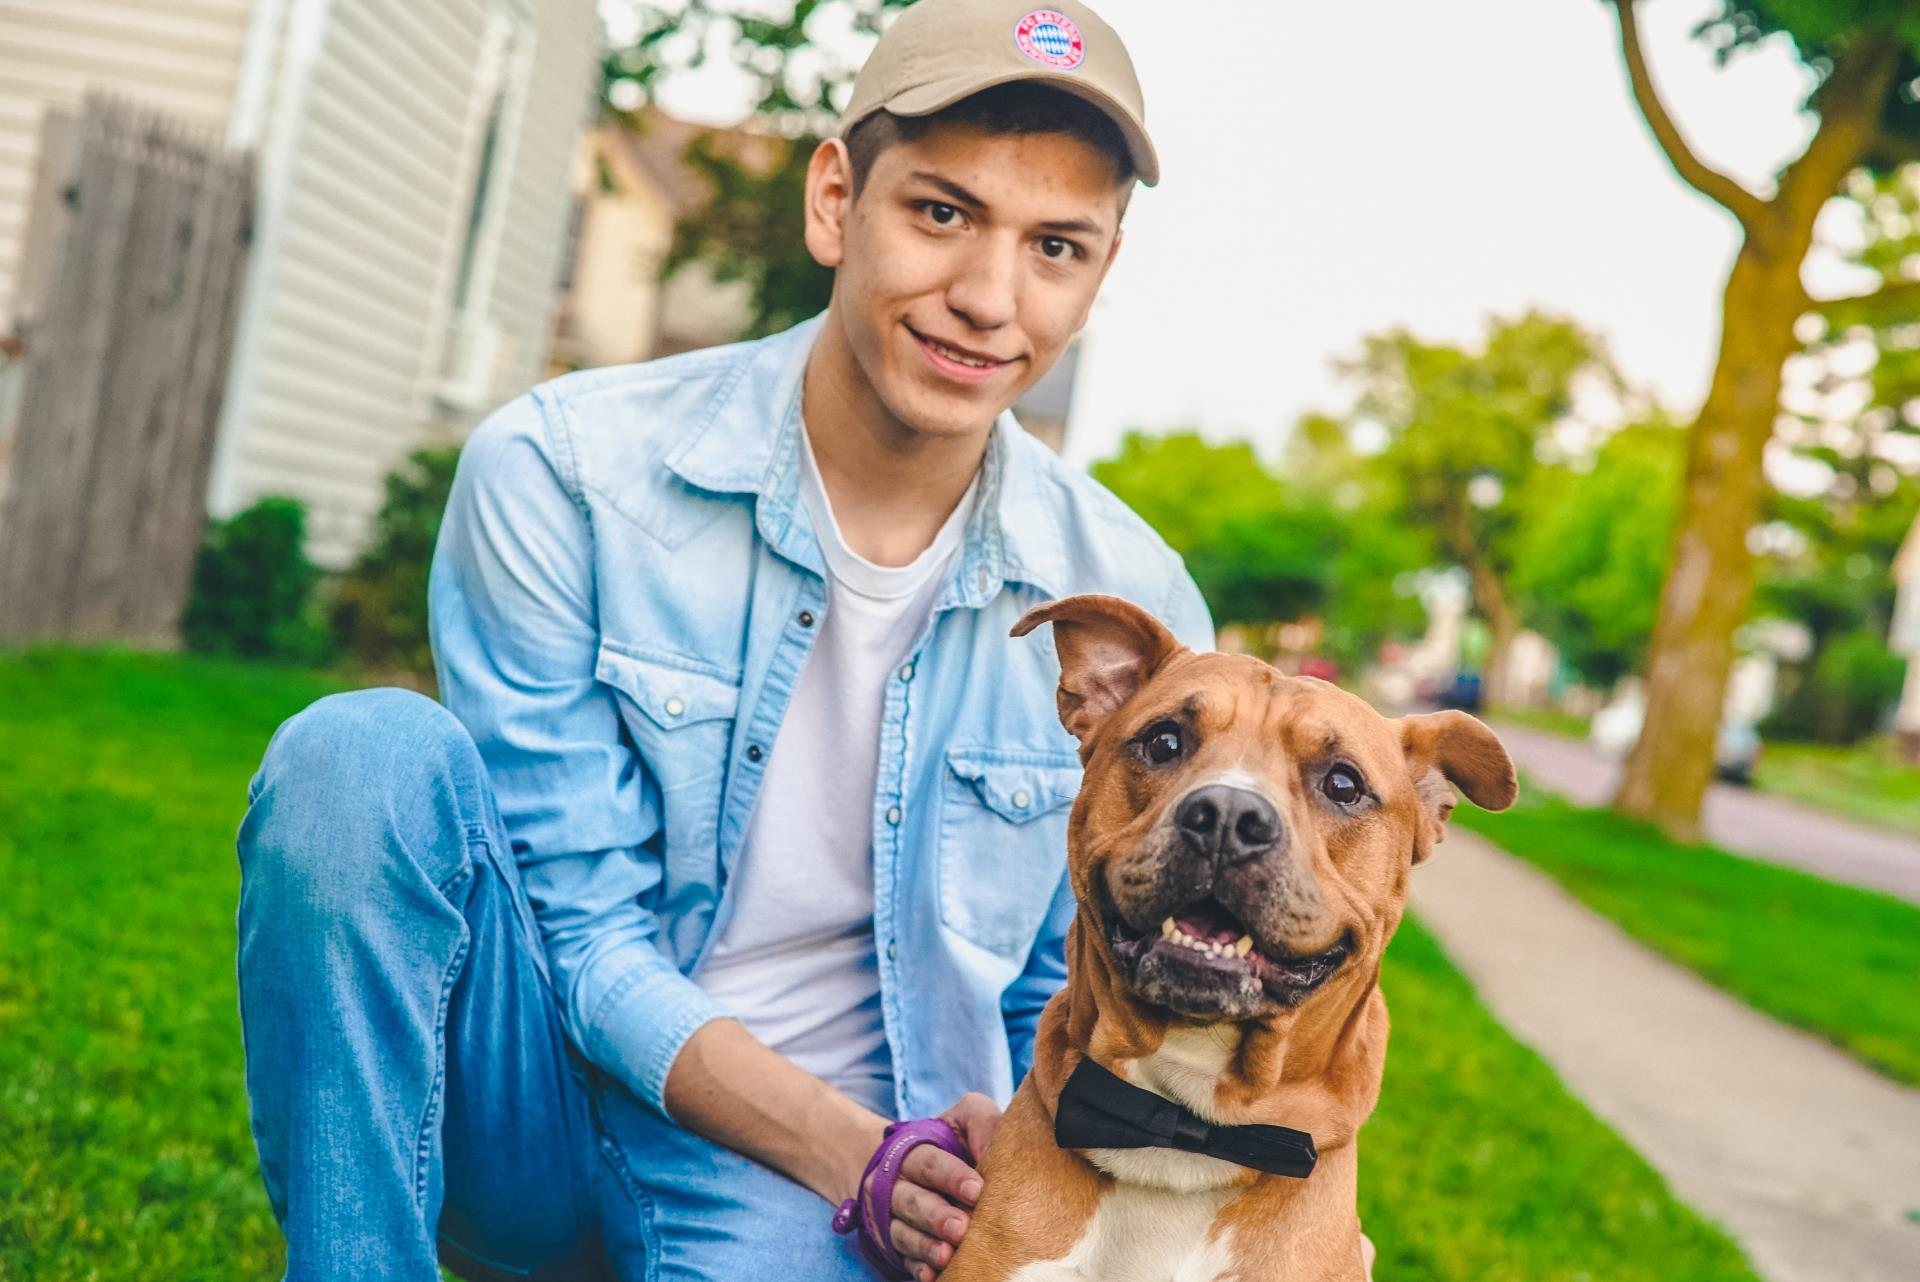 A young volunteer posing with a dog